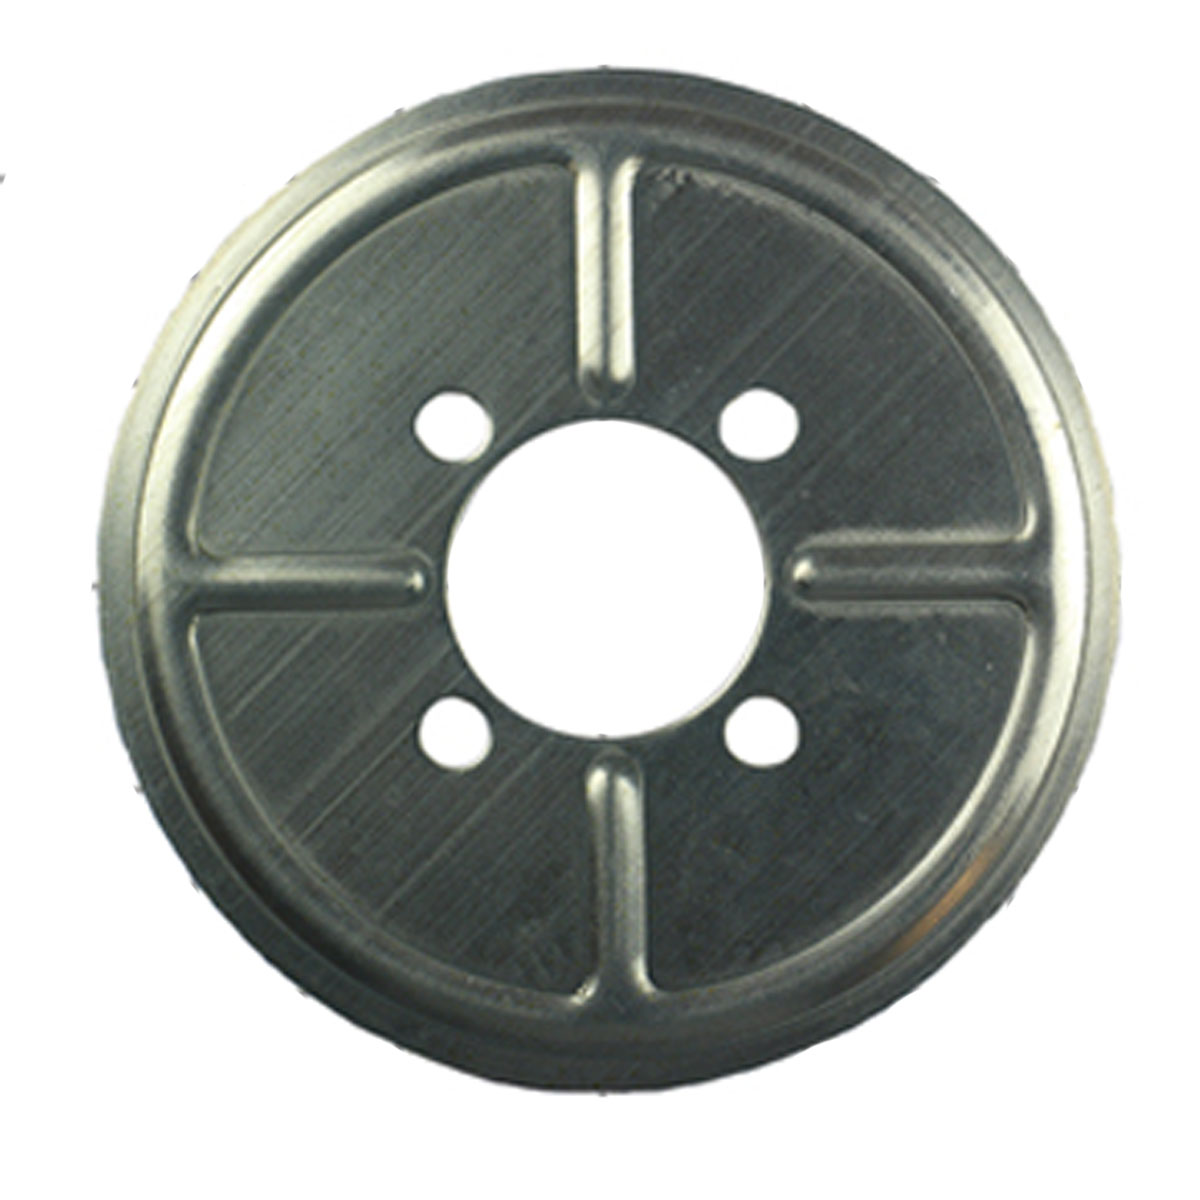 Snapper Plate Smooth Clutch 7032331yp